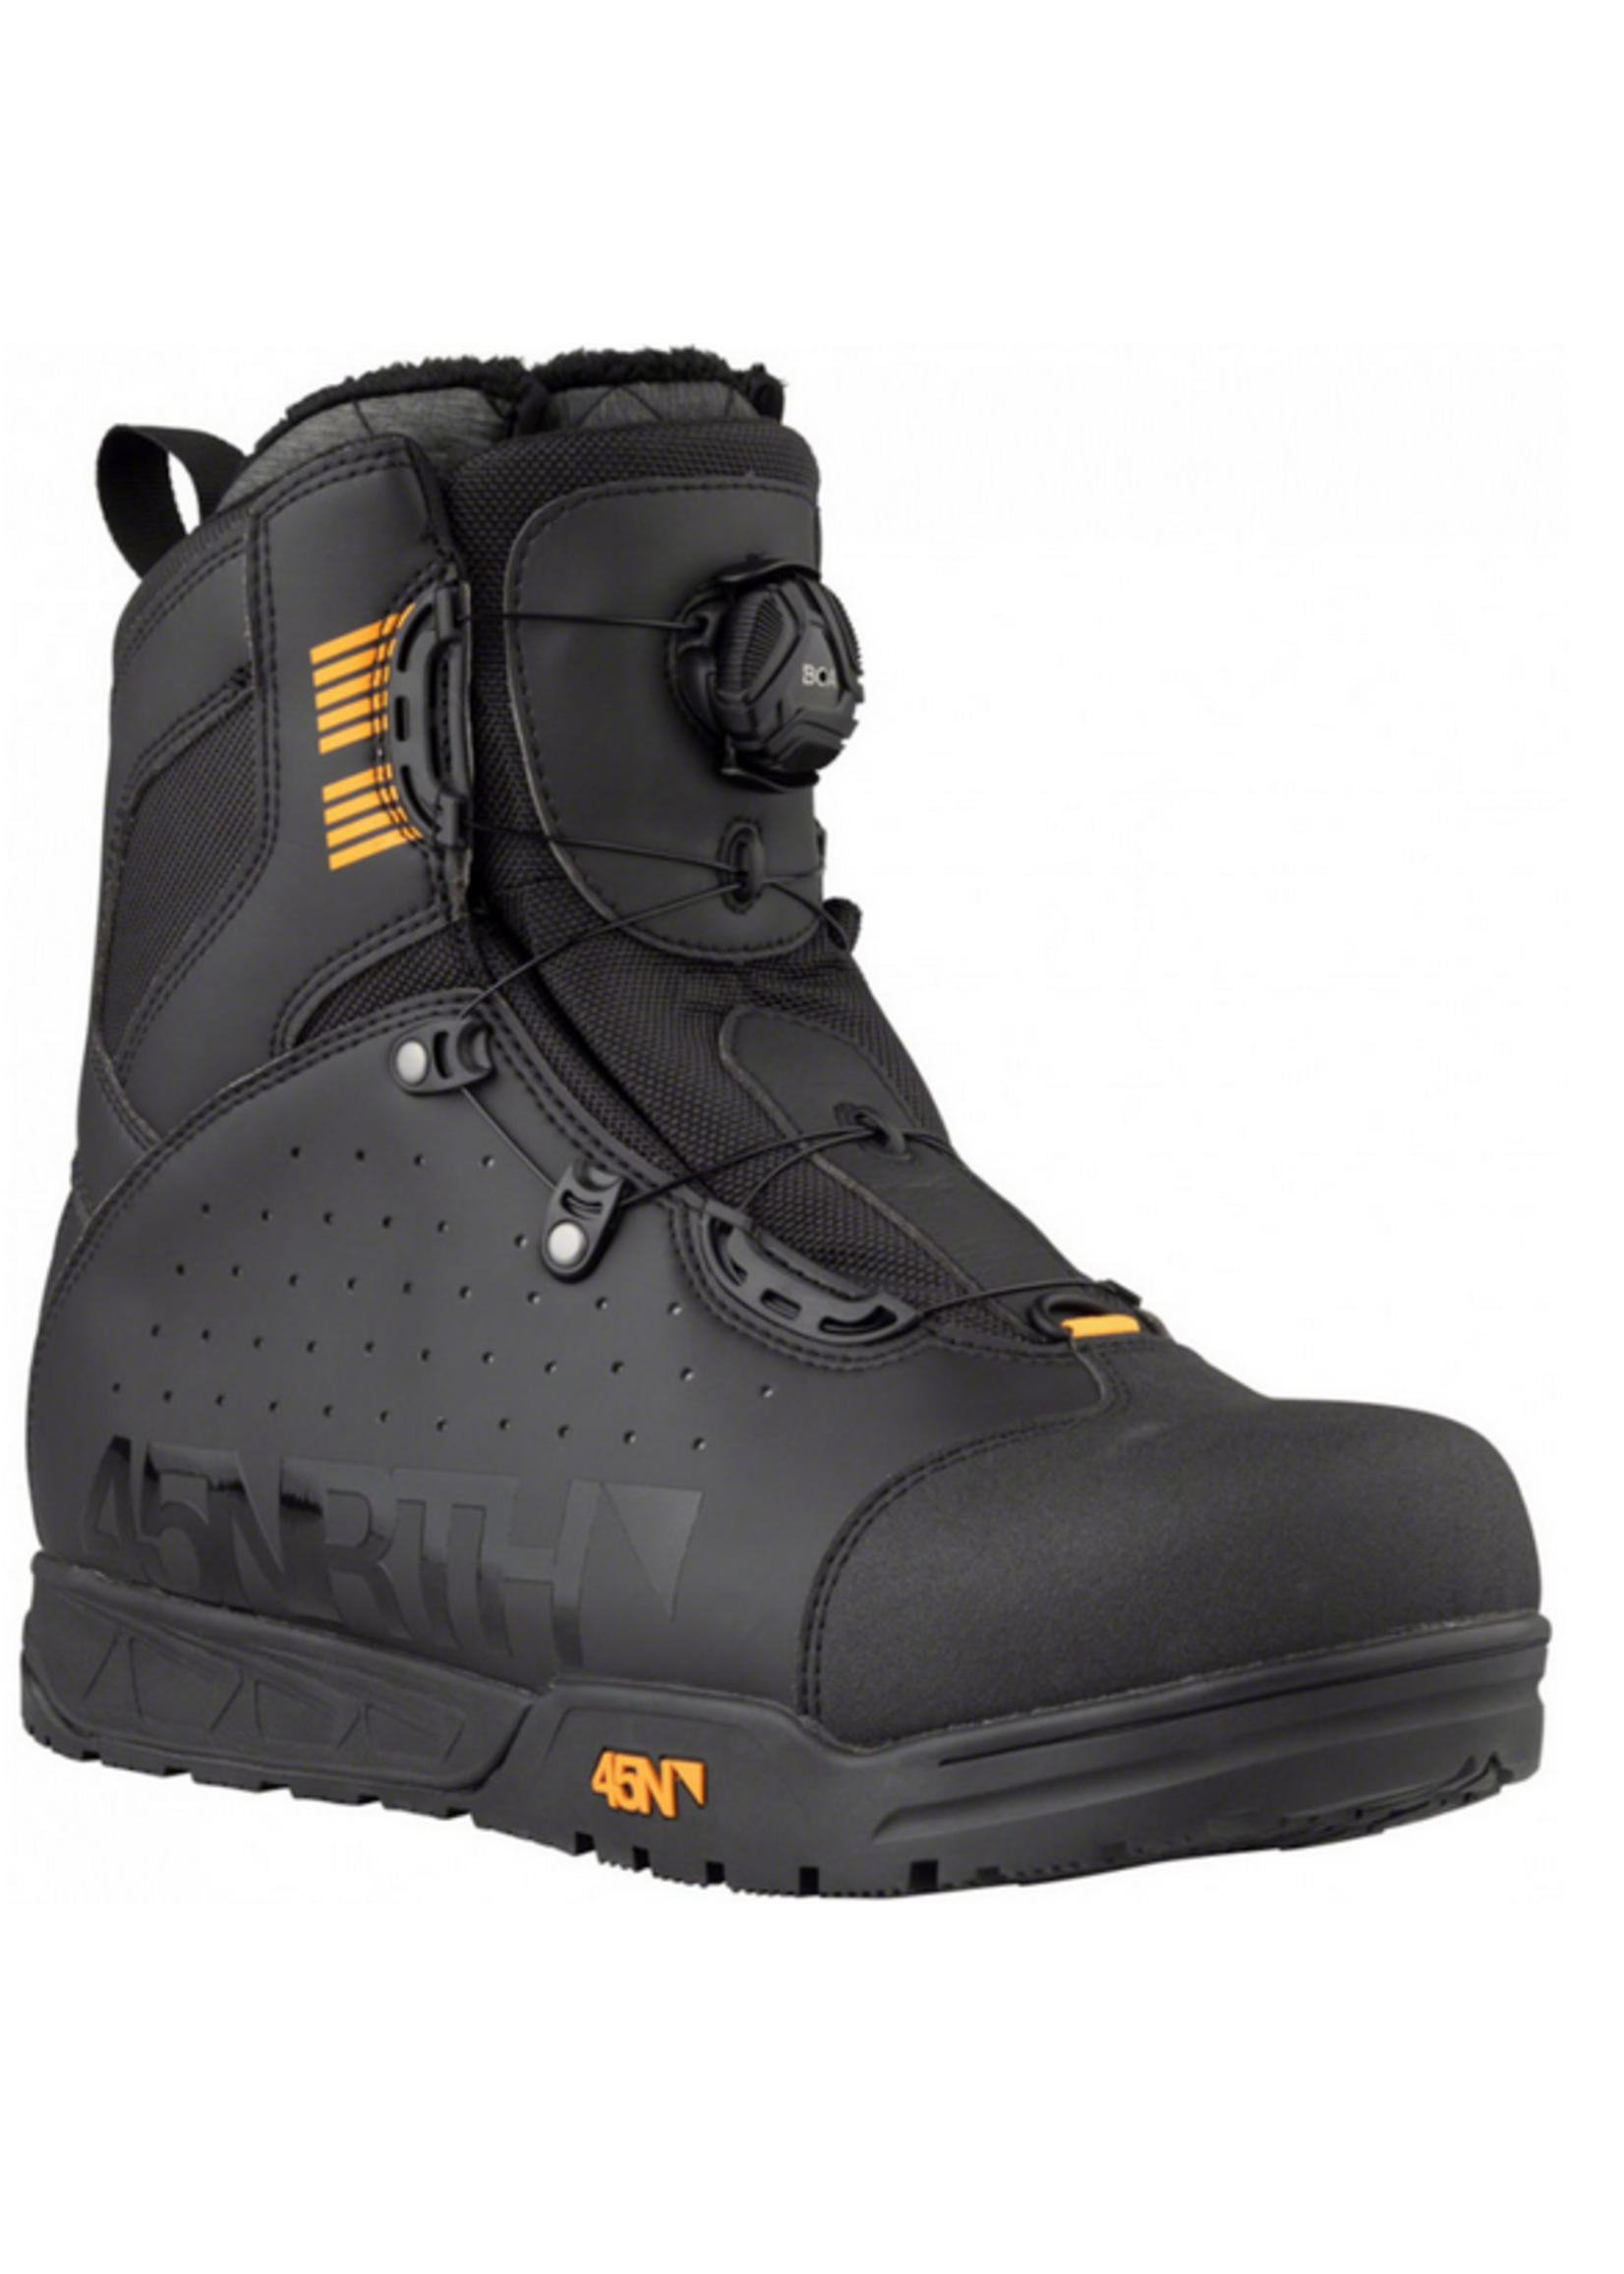 45NORTH 45North Wolvhammer Boot BLK